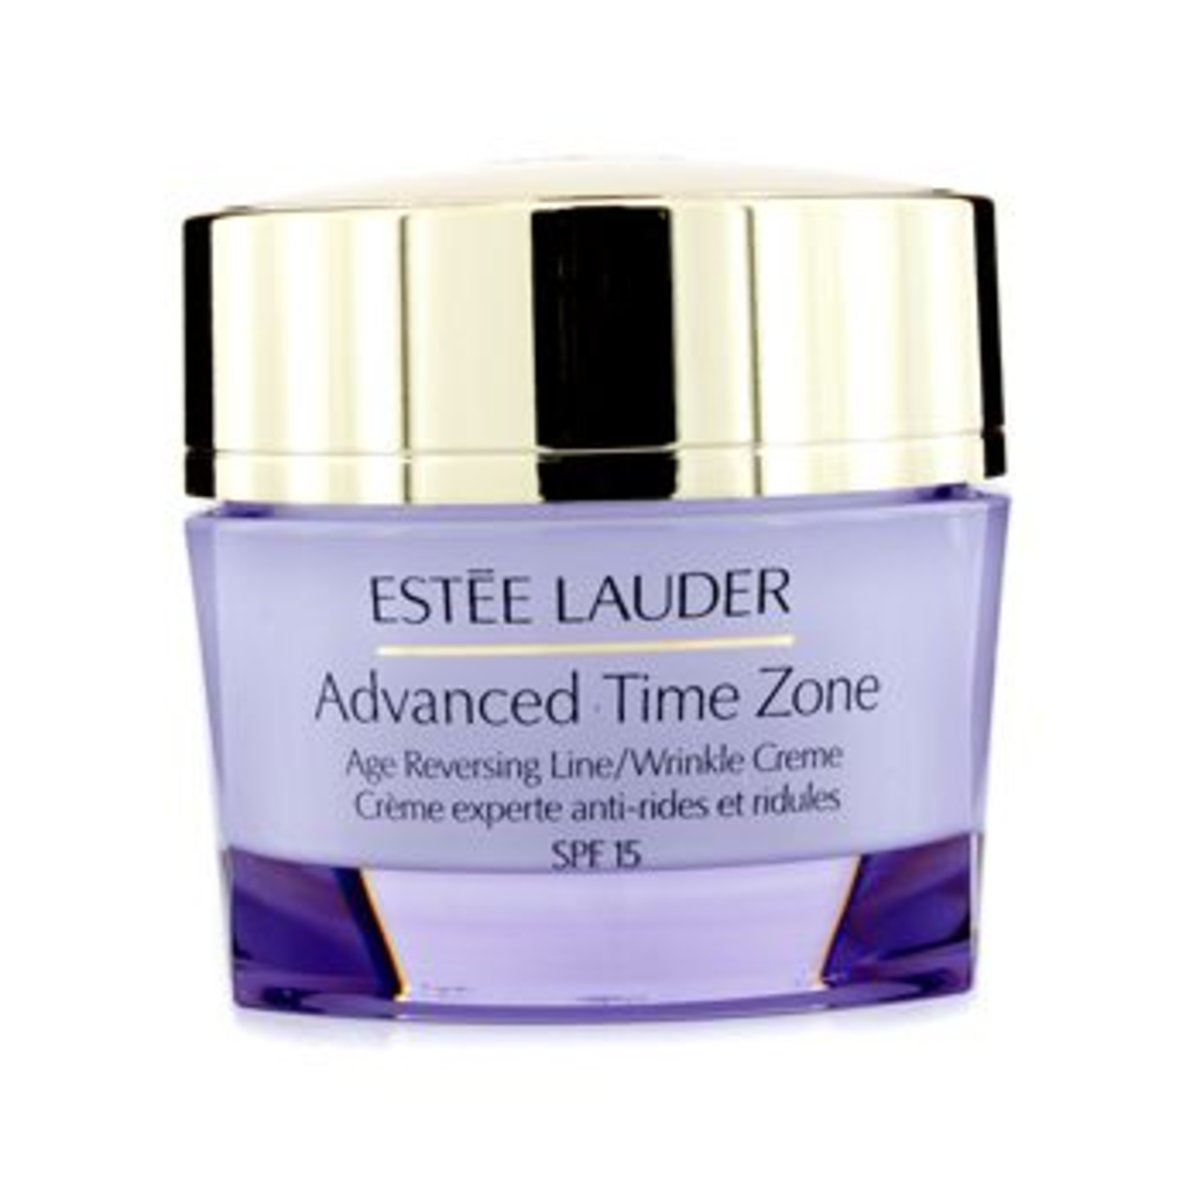 Advanced Time Zone Age Reversing Line/ Wrinkle Cream SPF15  -[Parallel Import Product]